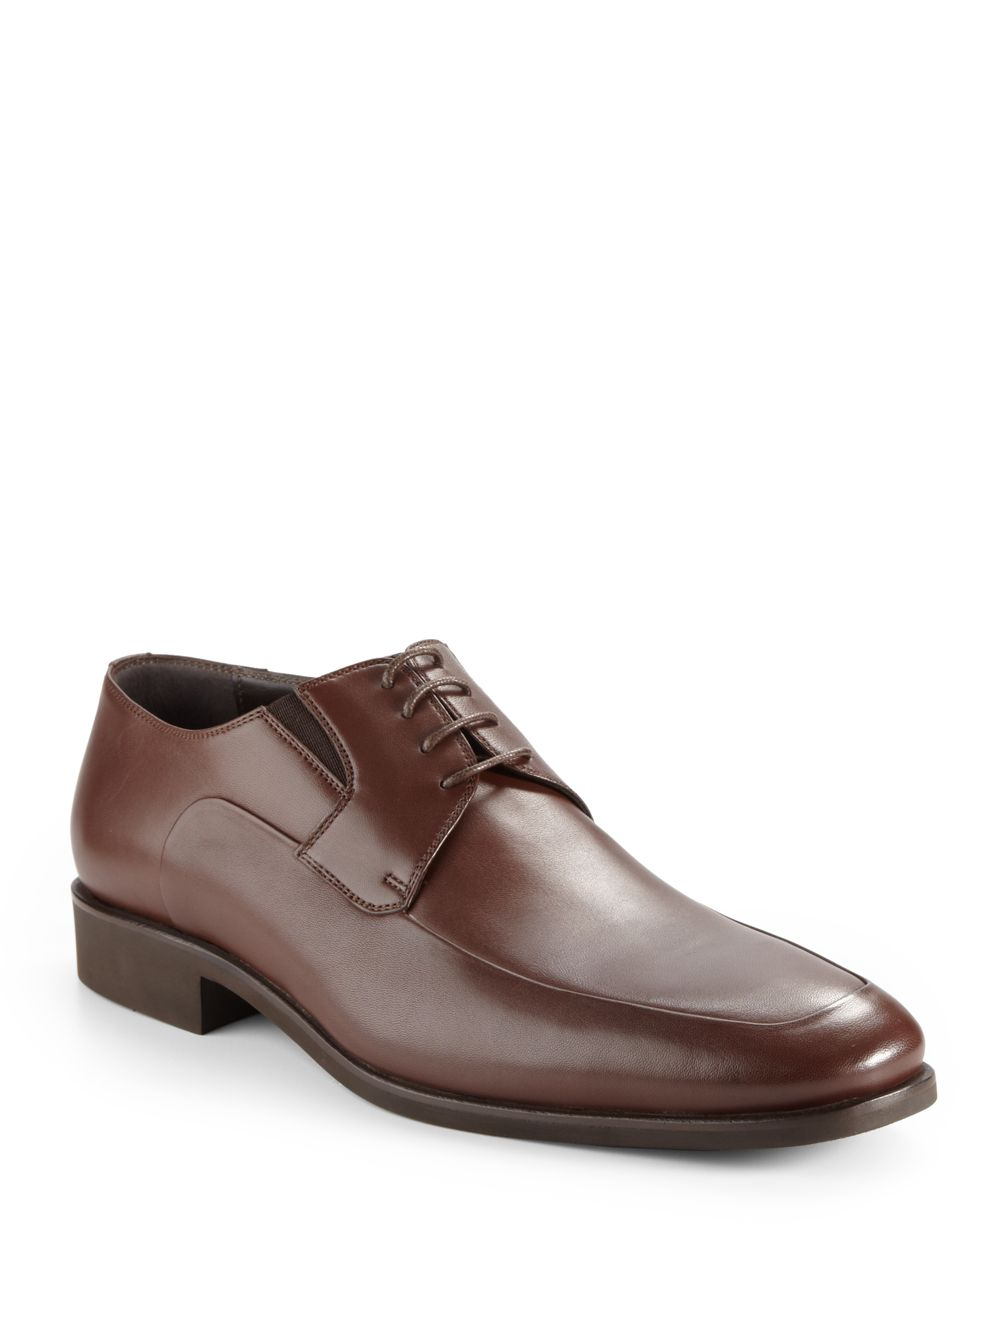 bruno magli rammola leather dress shoes in brown for